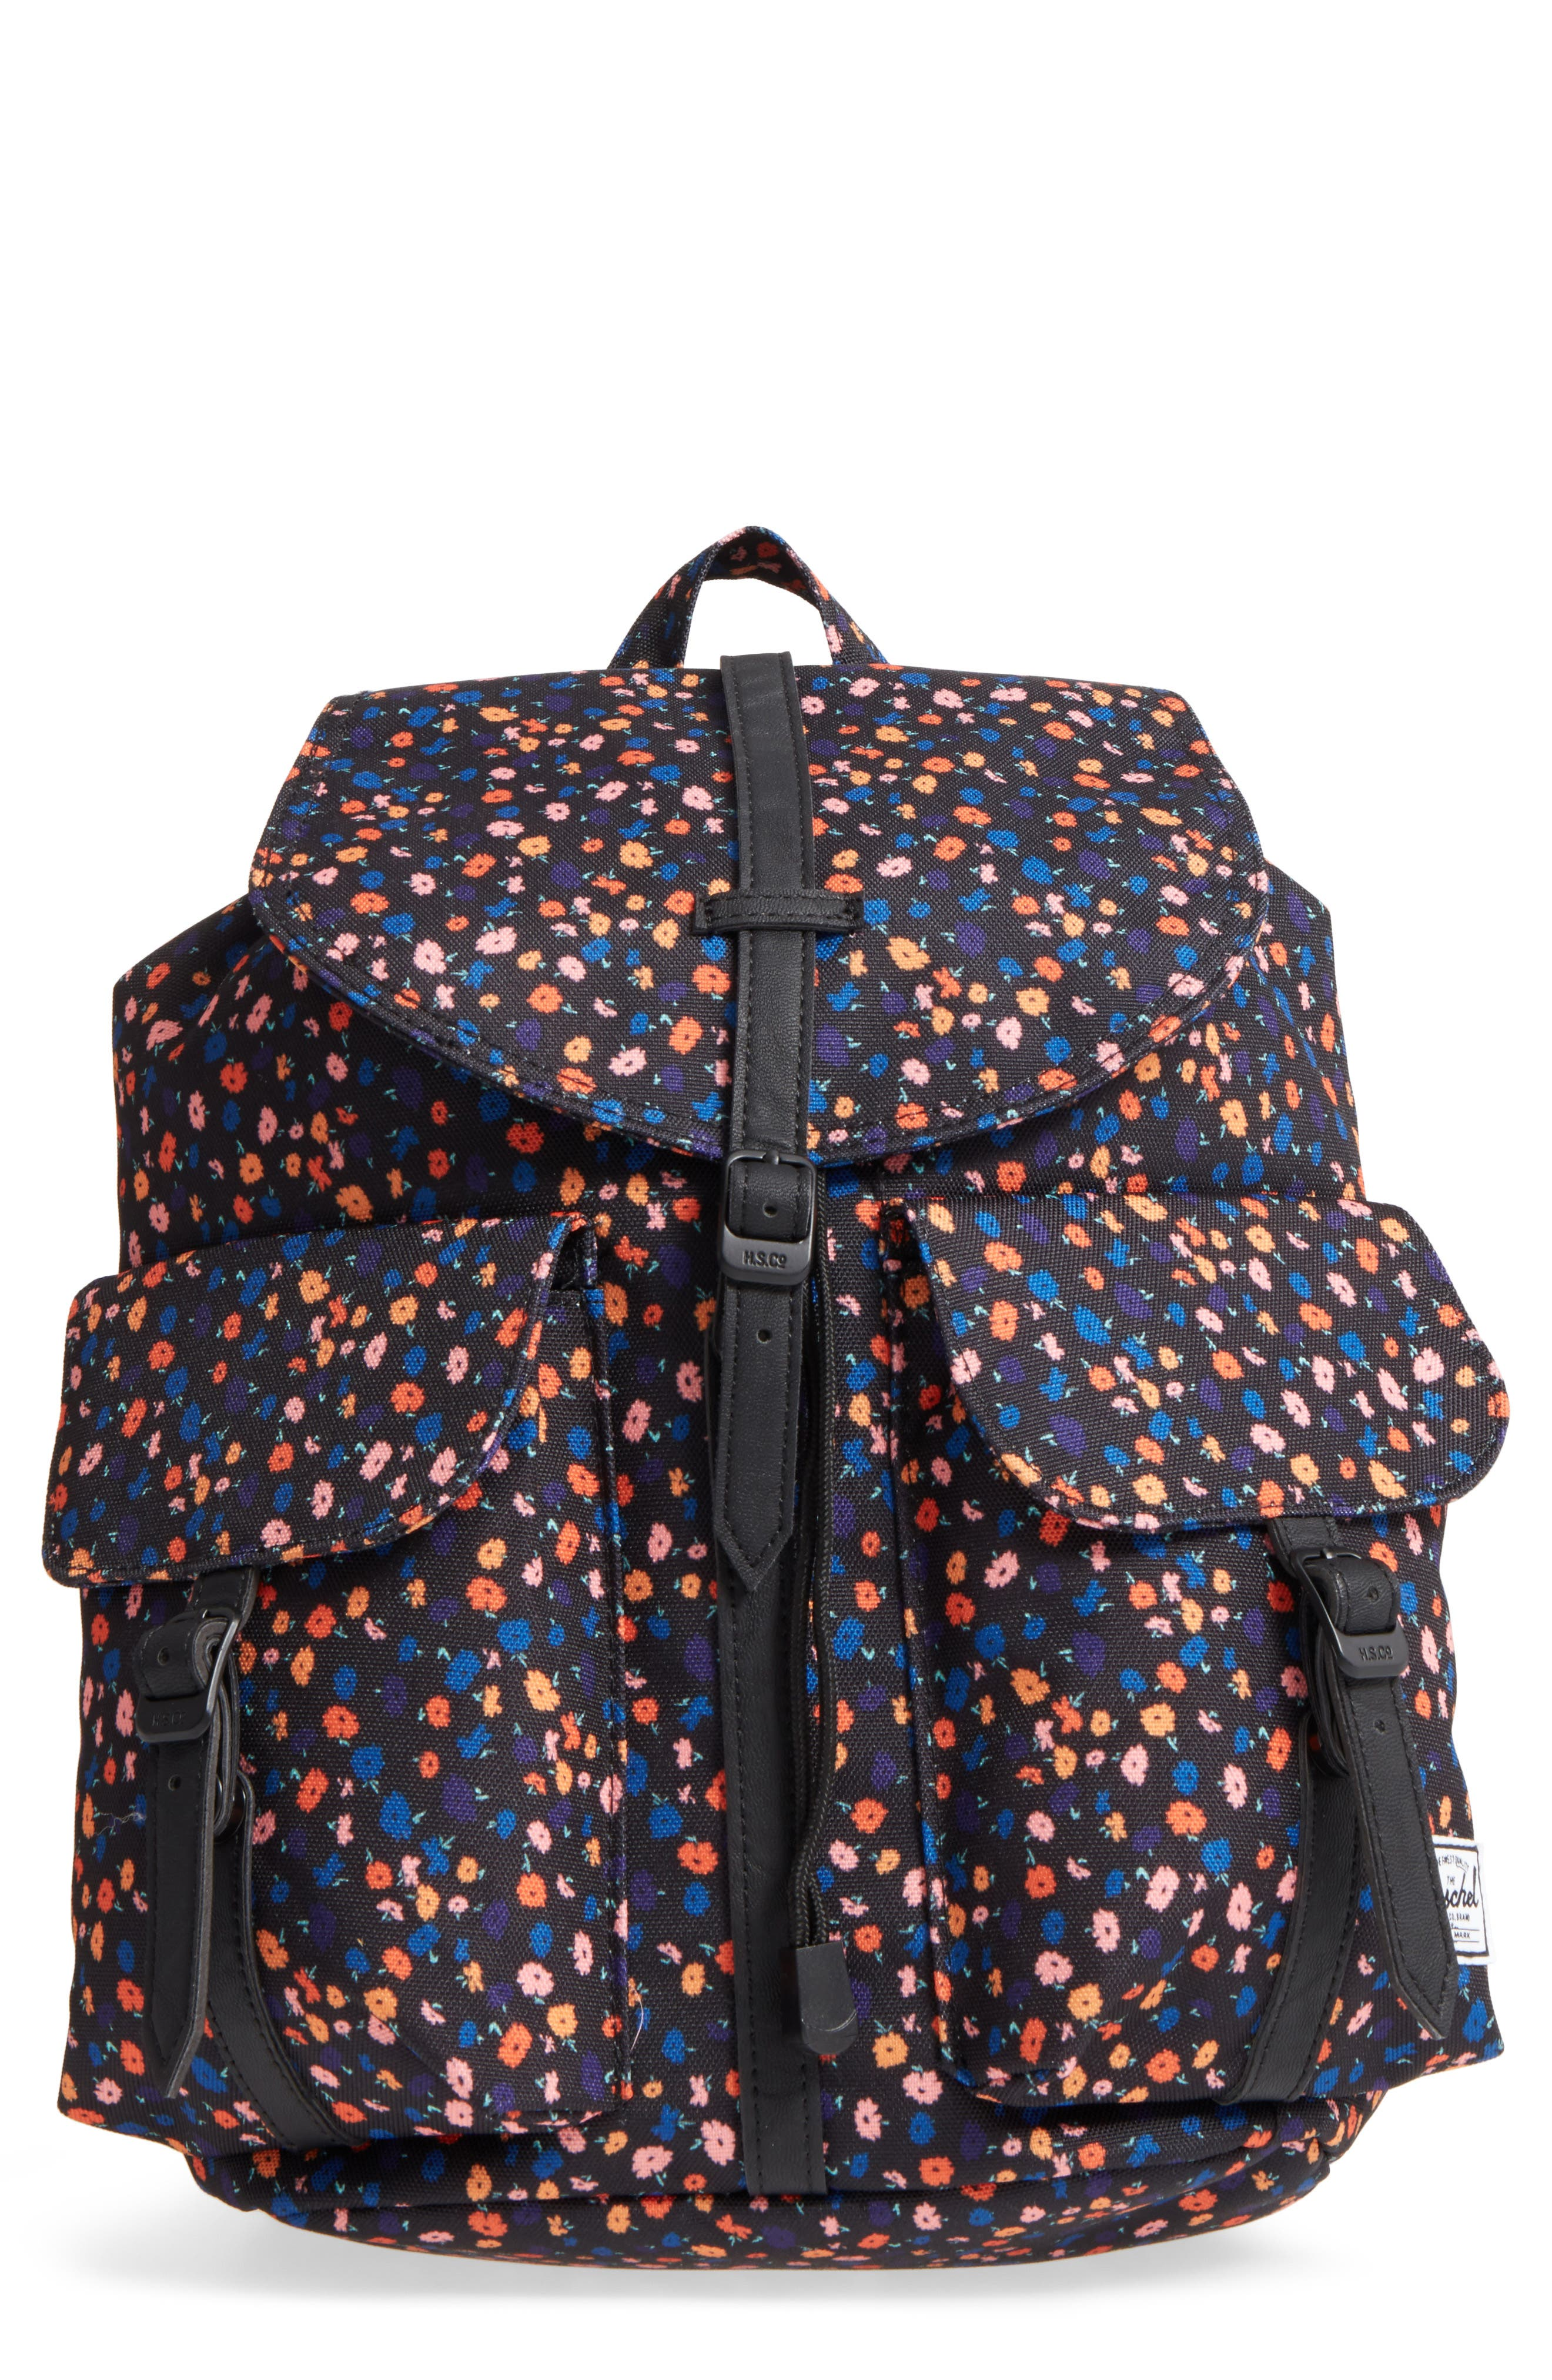 X-Small Dawson Backpack,                             Main thumbnail 1, color,                             005